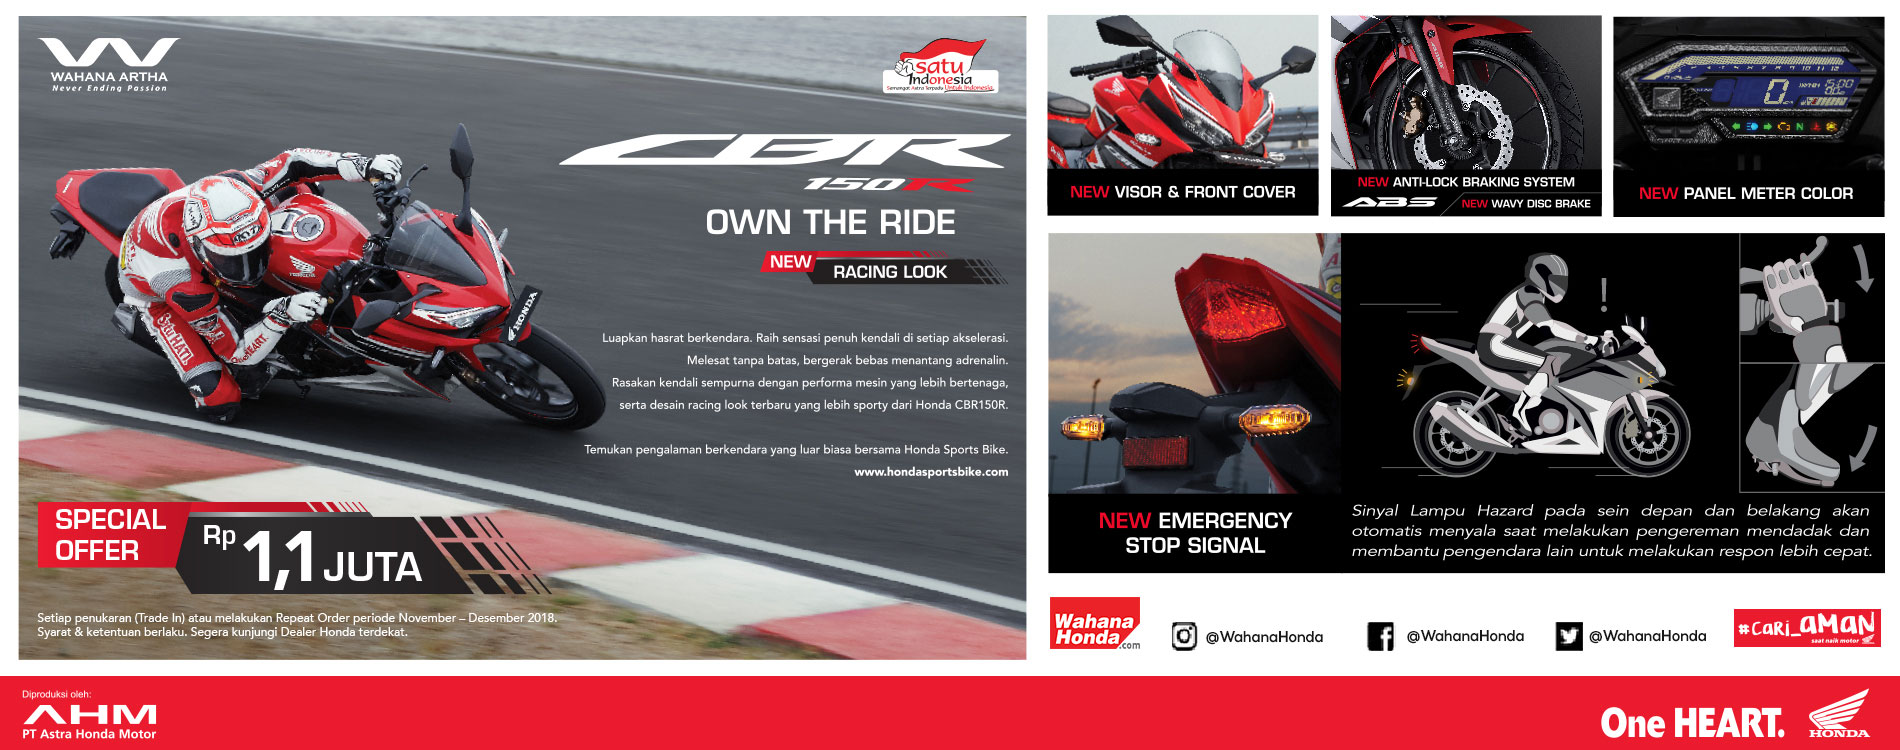 Special Offer Rp 1.1 Juta CBR 150 R  OWN THE RIDE  NEW RACING LOOK